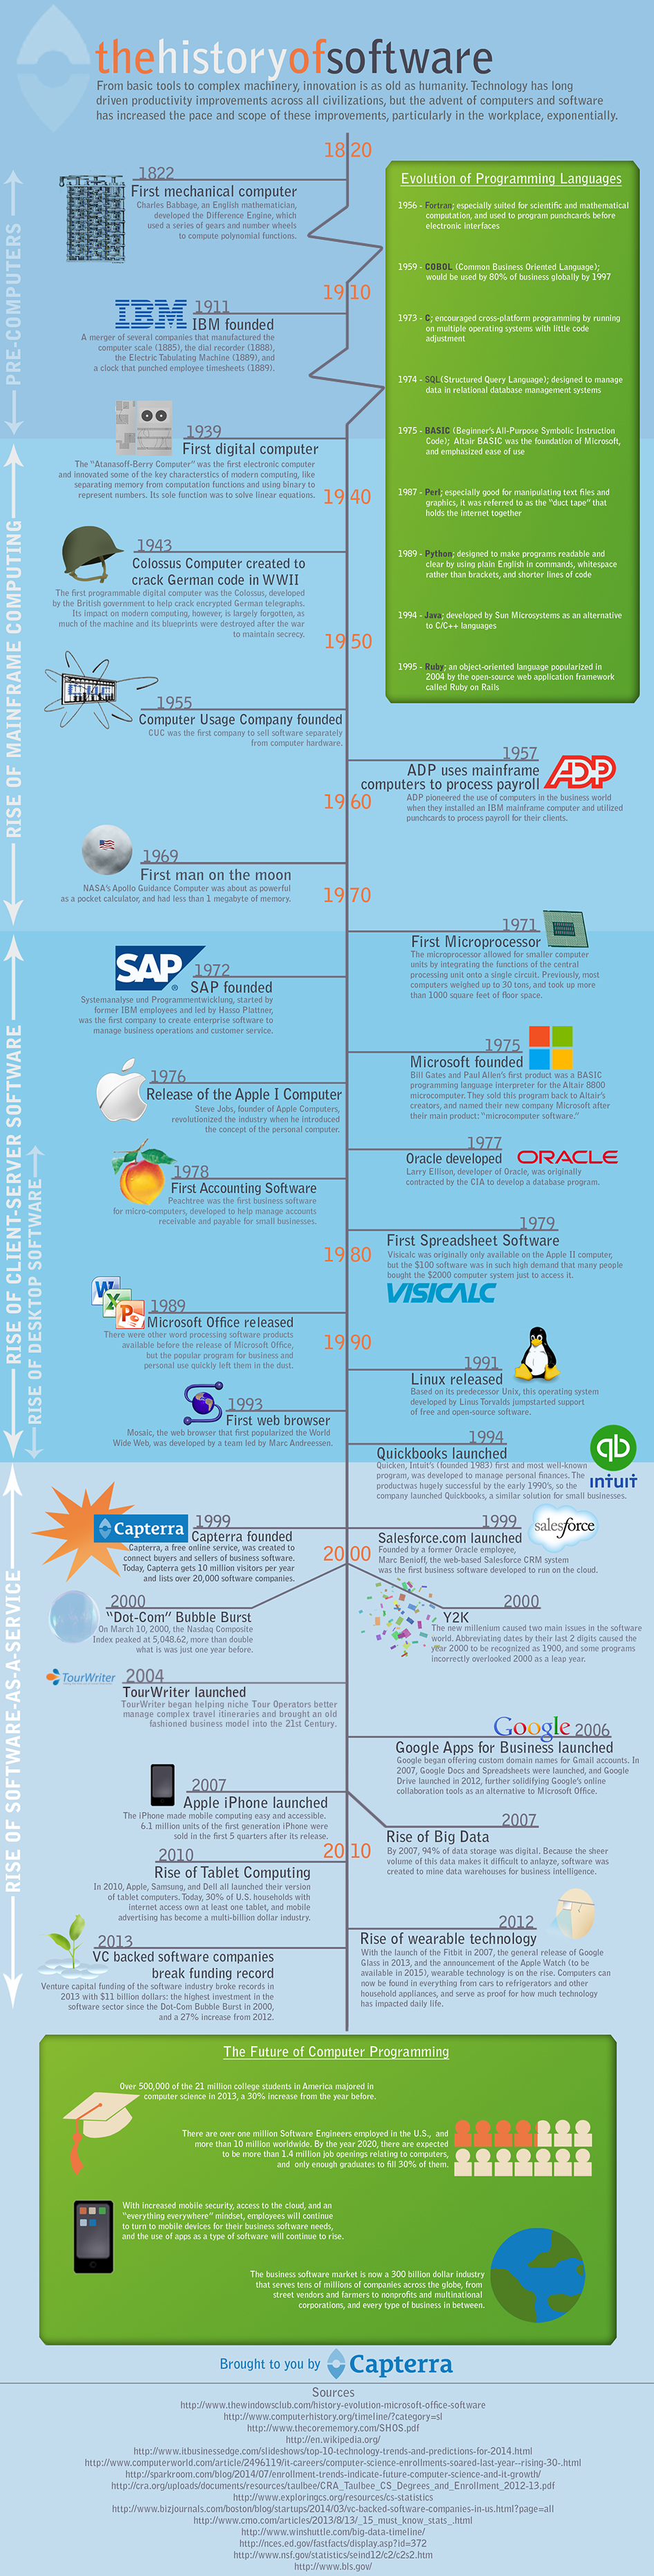 The History of Software (a time travel Infographic)